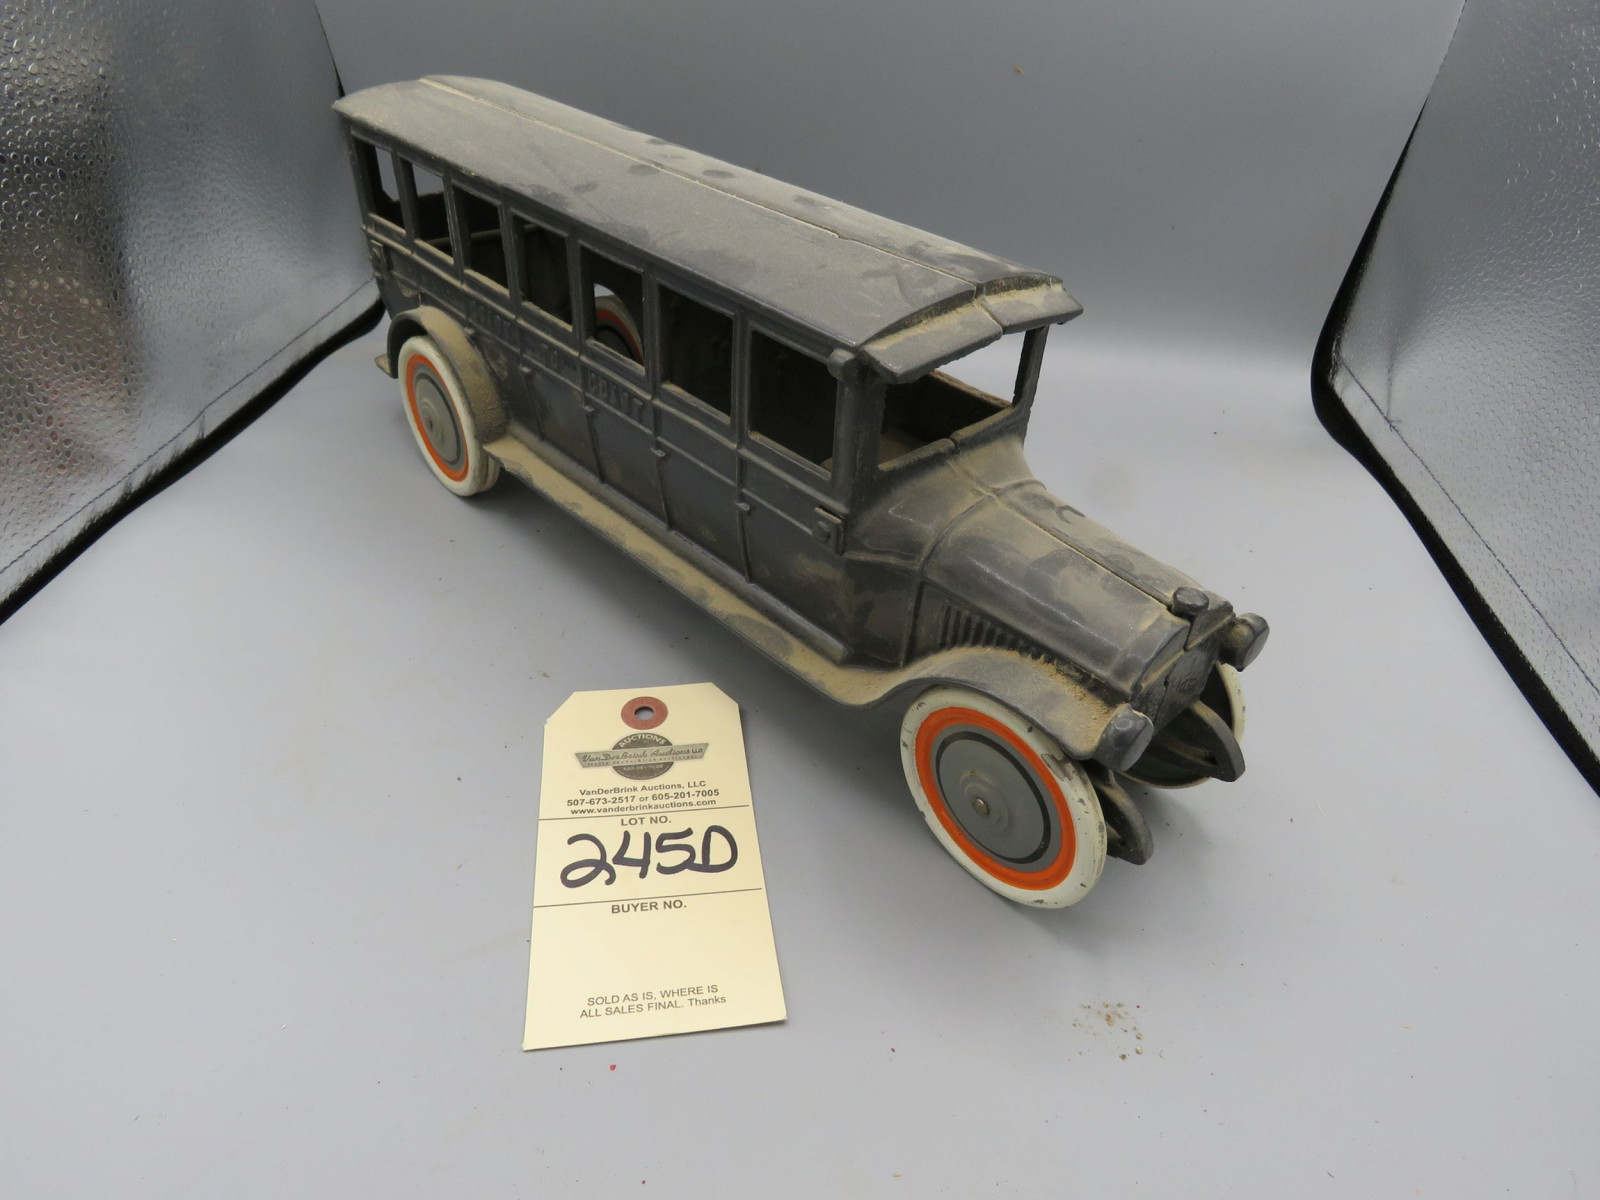 Believed to be Reproduction Arcade Bus - Image 1